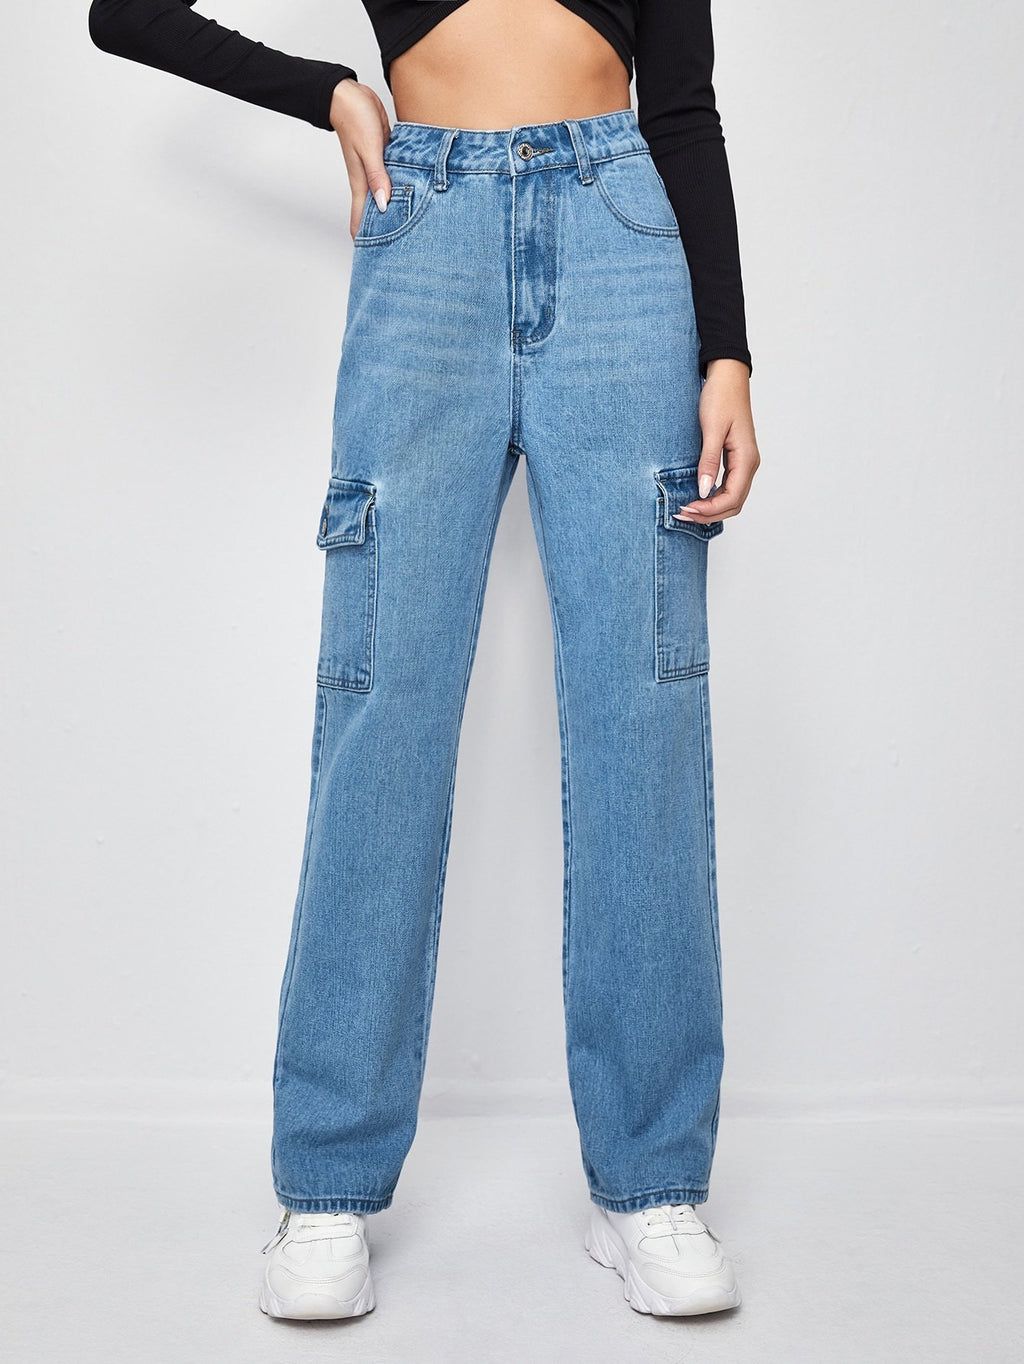 High-Waisted Patch Pocket Straight Jeans - INS | Online Fashion Free Shipping Clothing, Dresses, Tops, Shoes